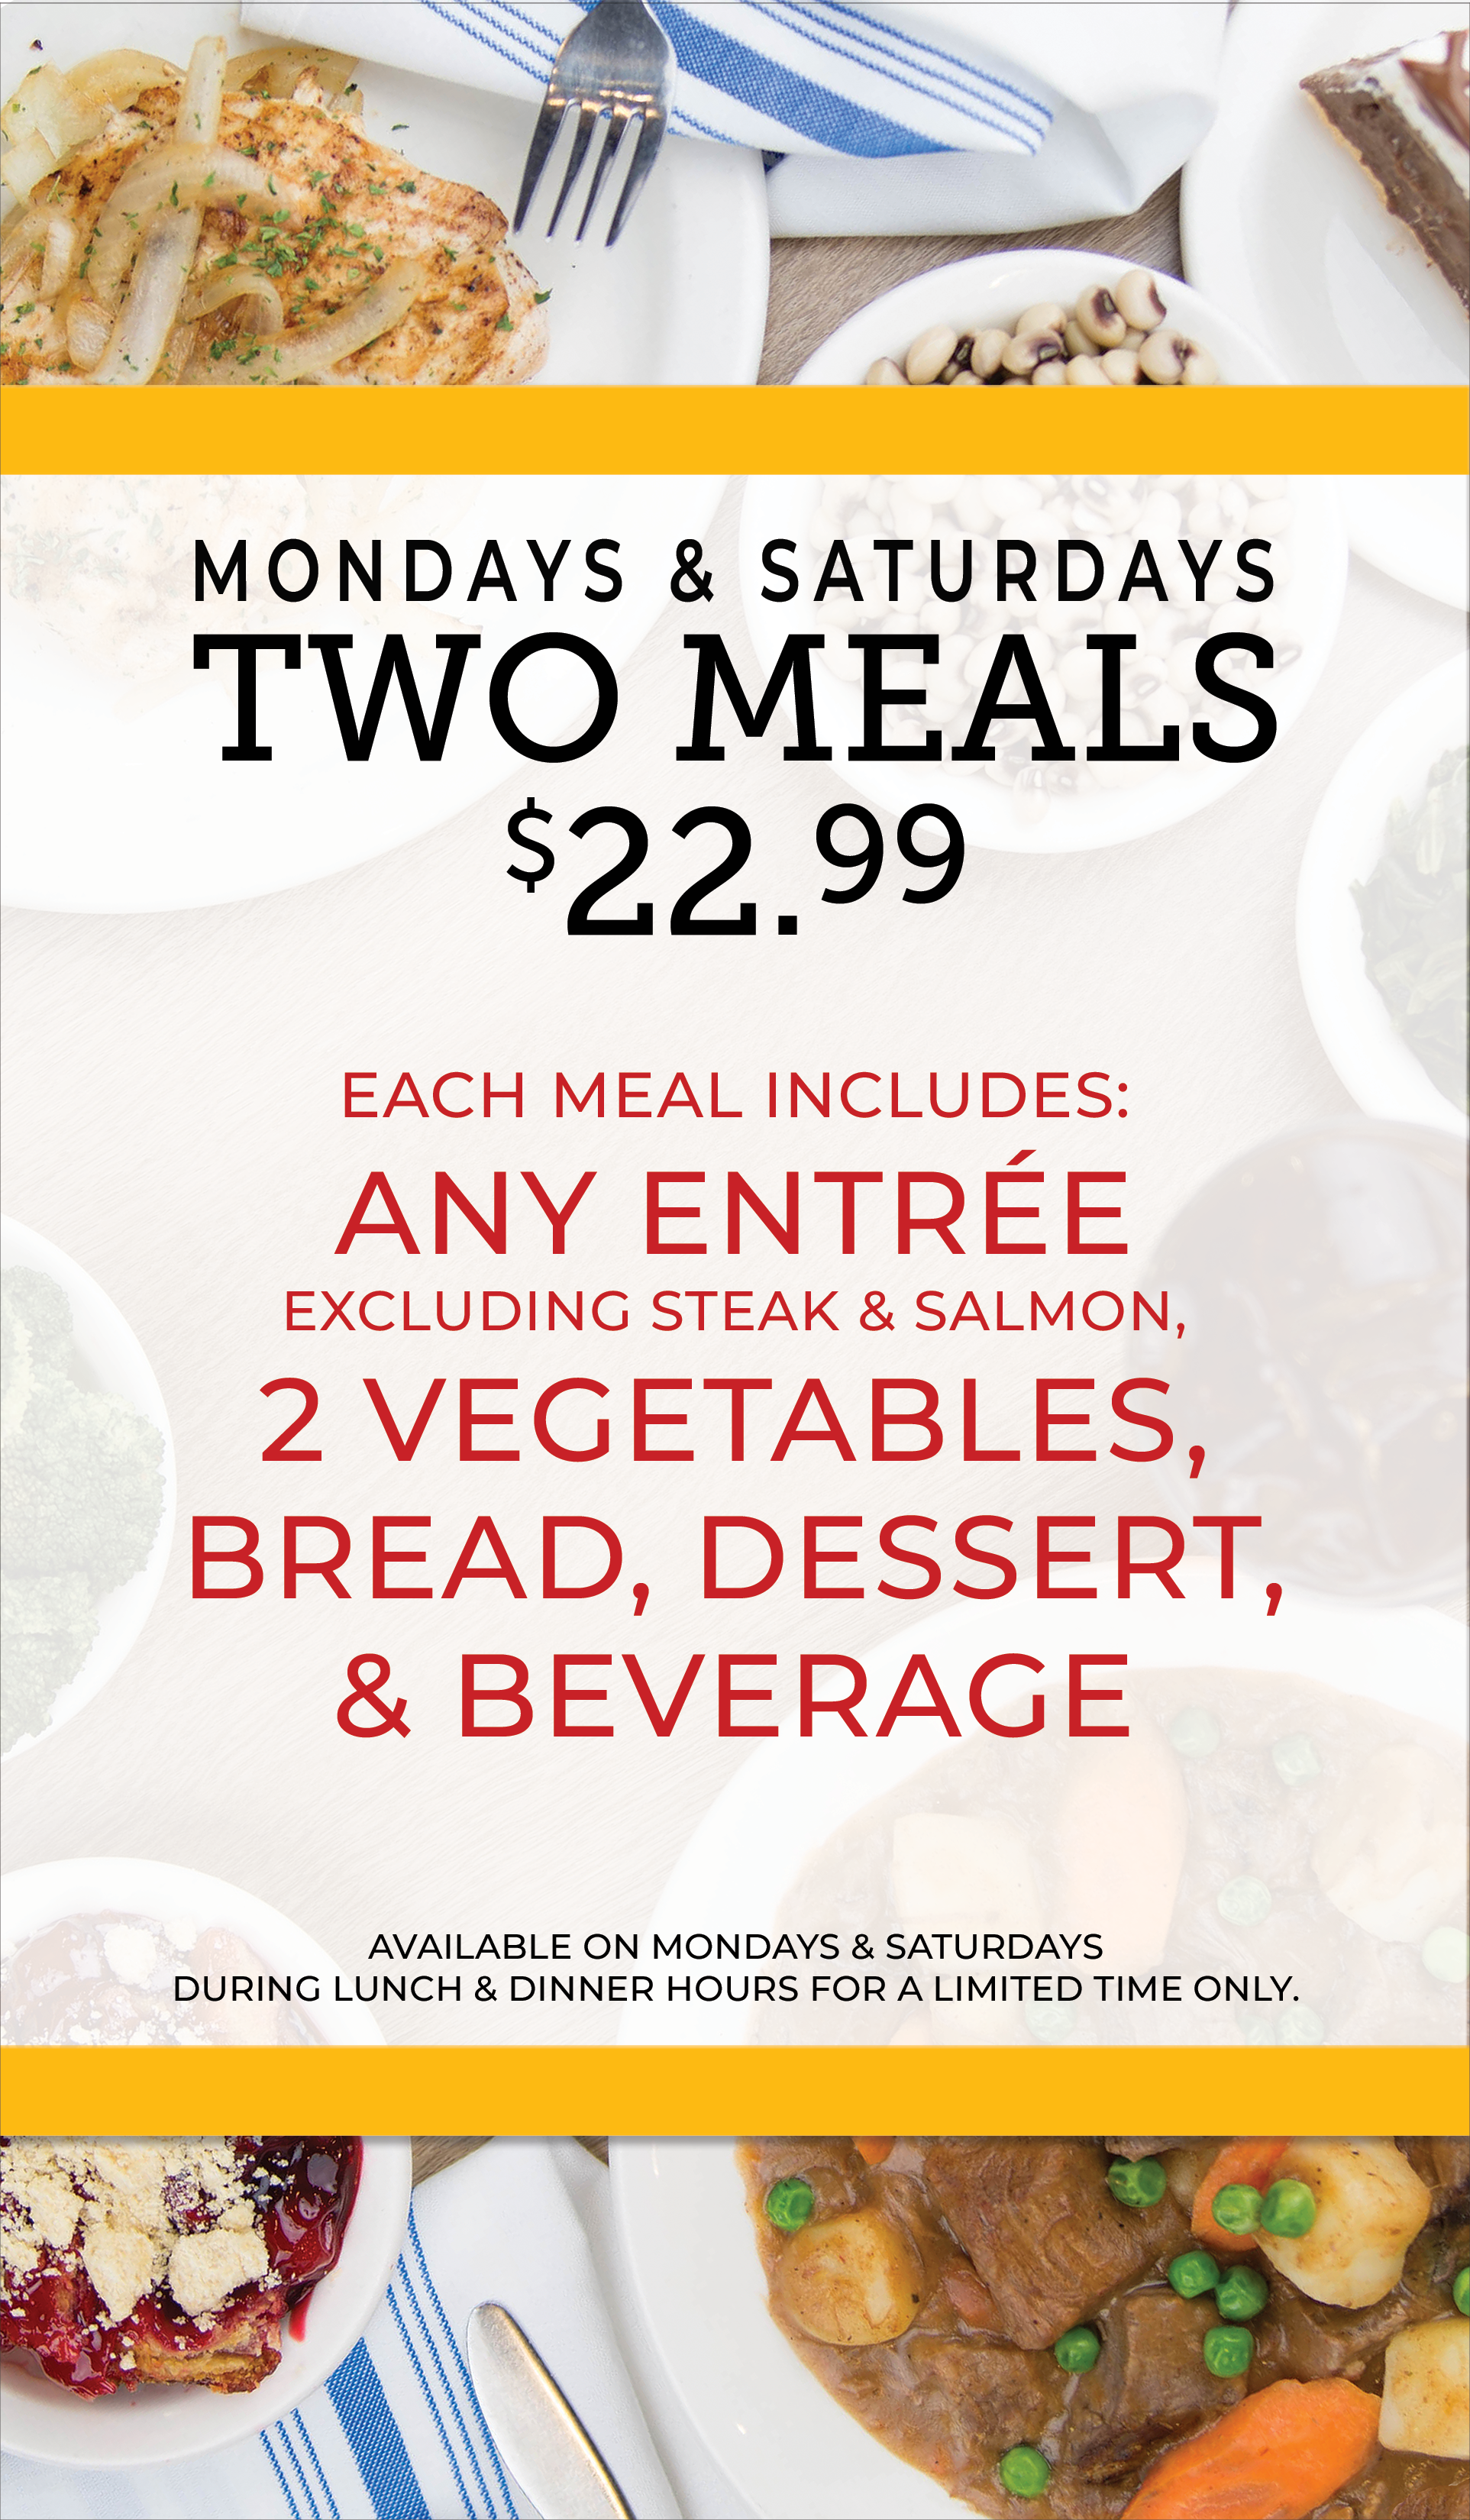 Two complete meals for $22.99